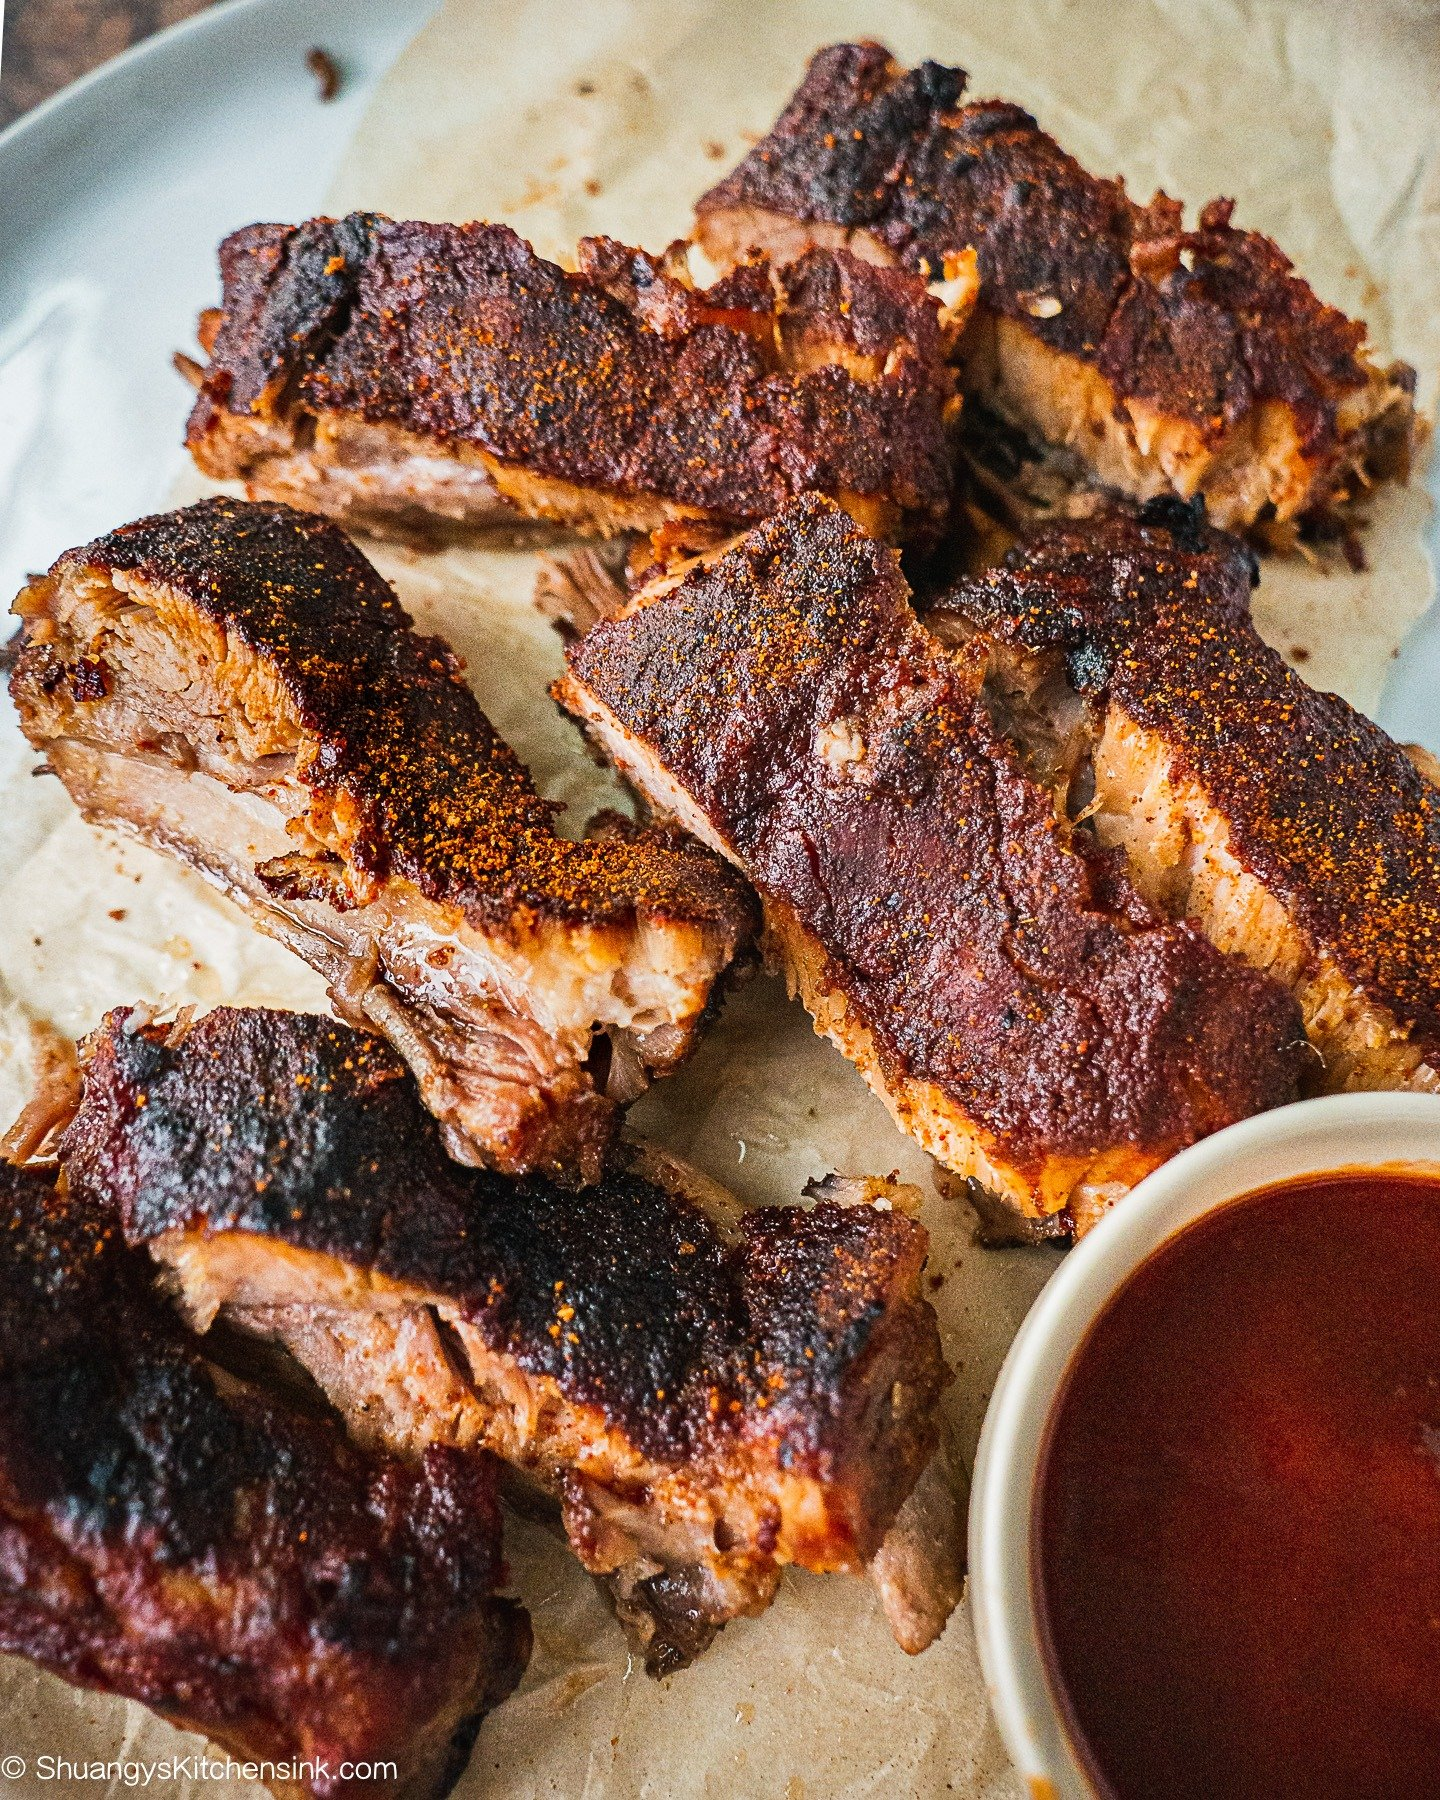 Charred Slow Cooker Whole30 BBQ Ribs on a piece of parchment paper. There is a jar of BBQ Sauce on the side.